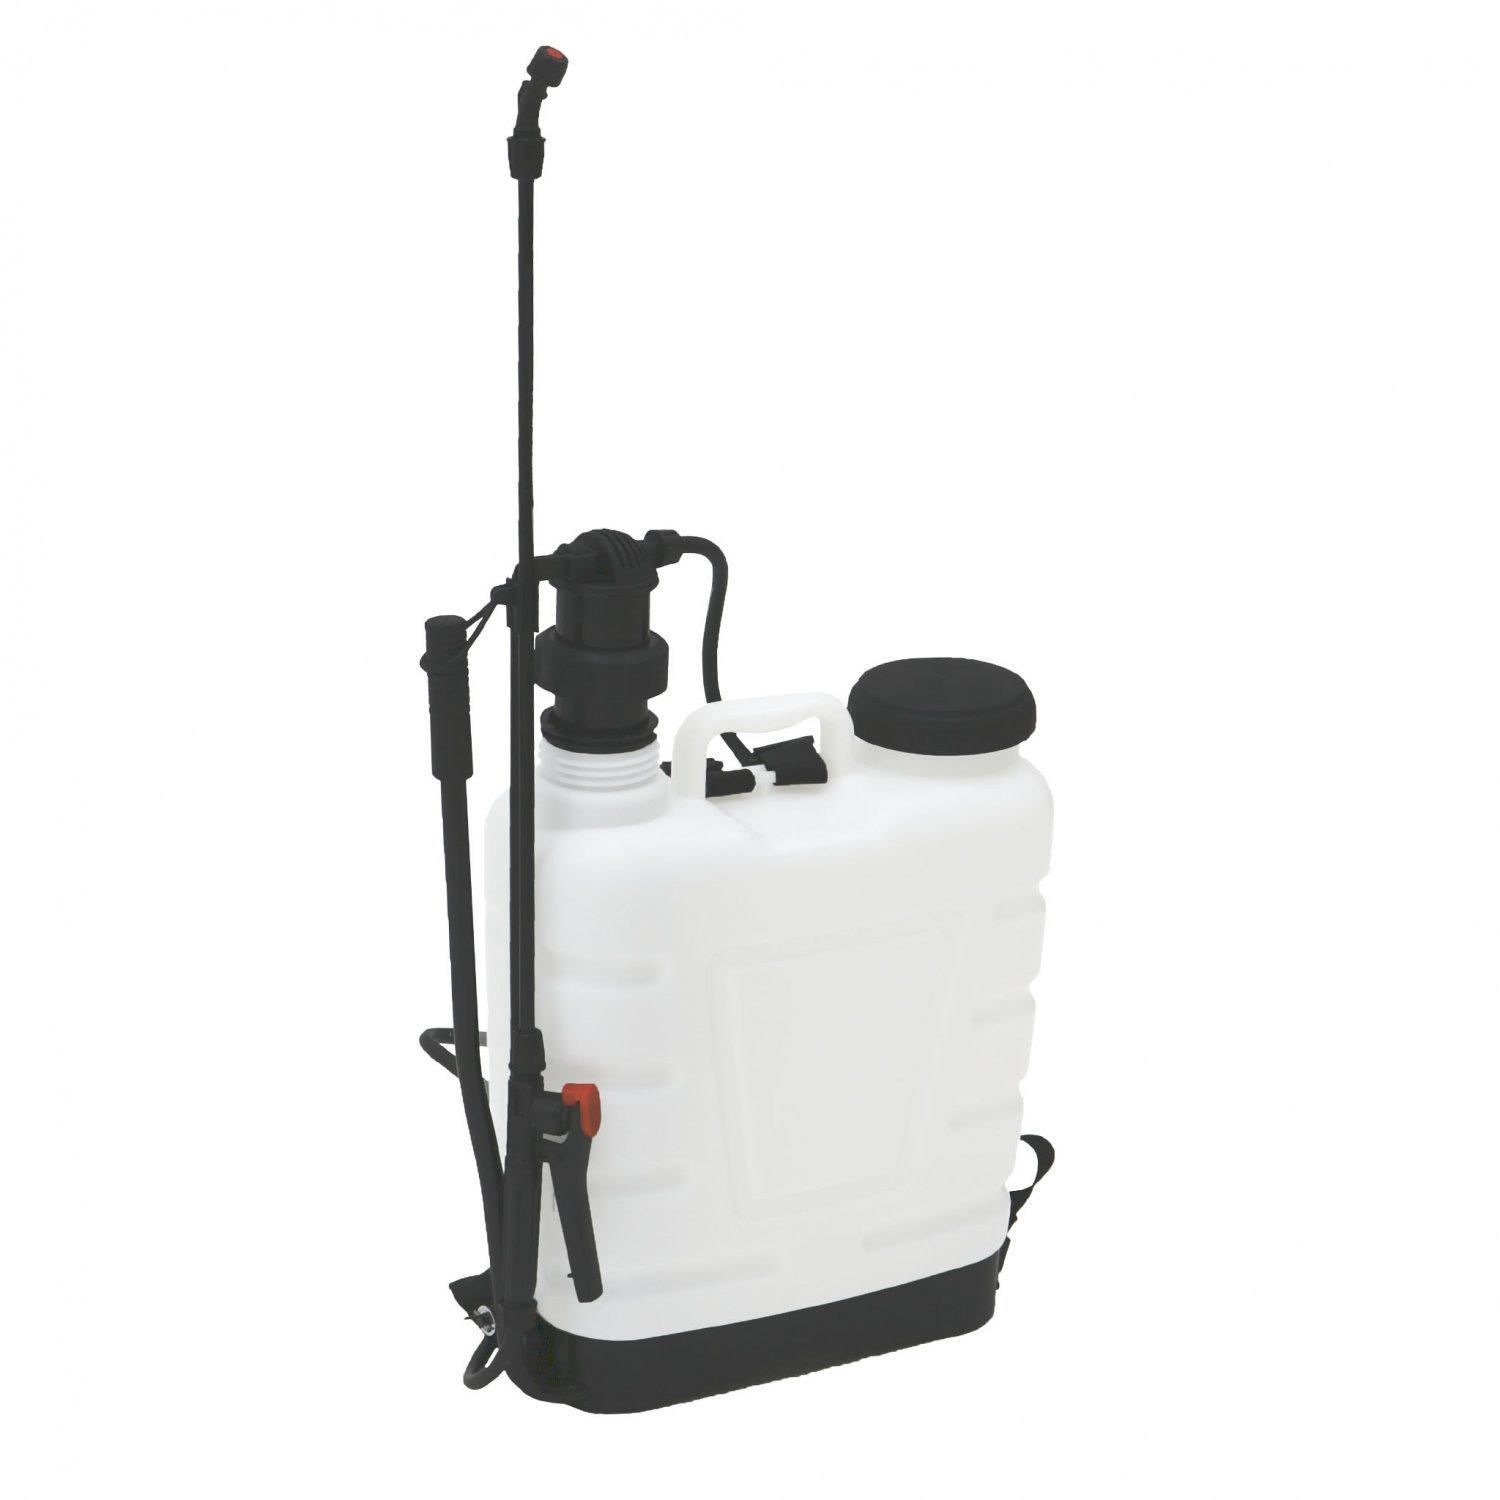 16L 16 Litre Backpack Knapsack Pressure Crop Garden Weed Sprayer